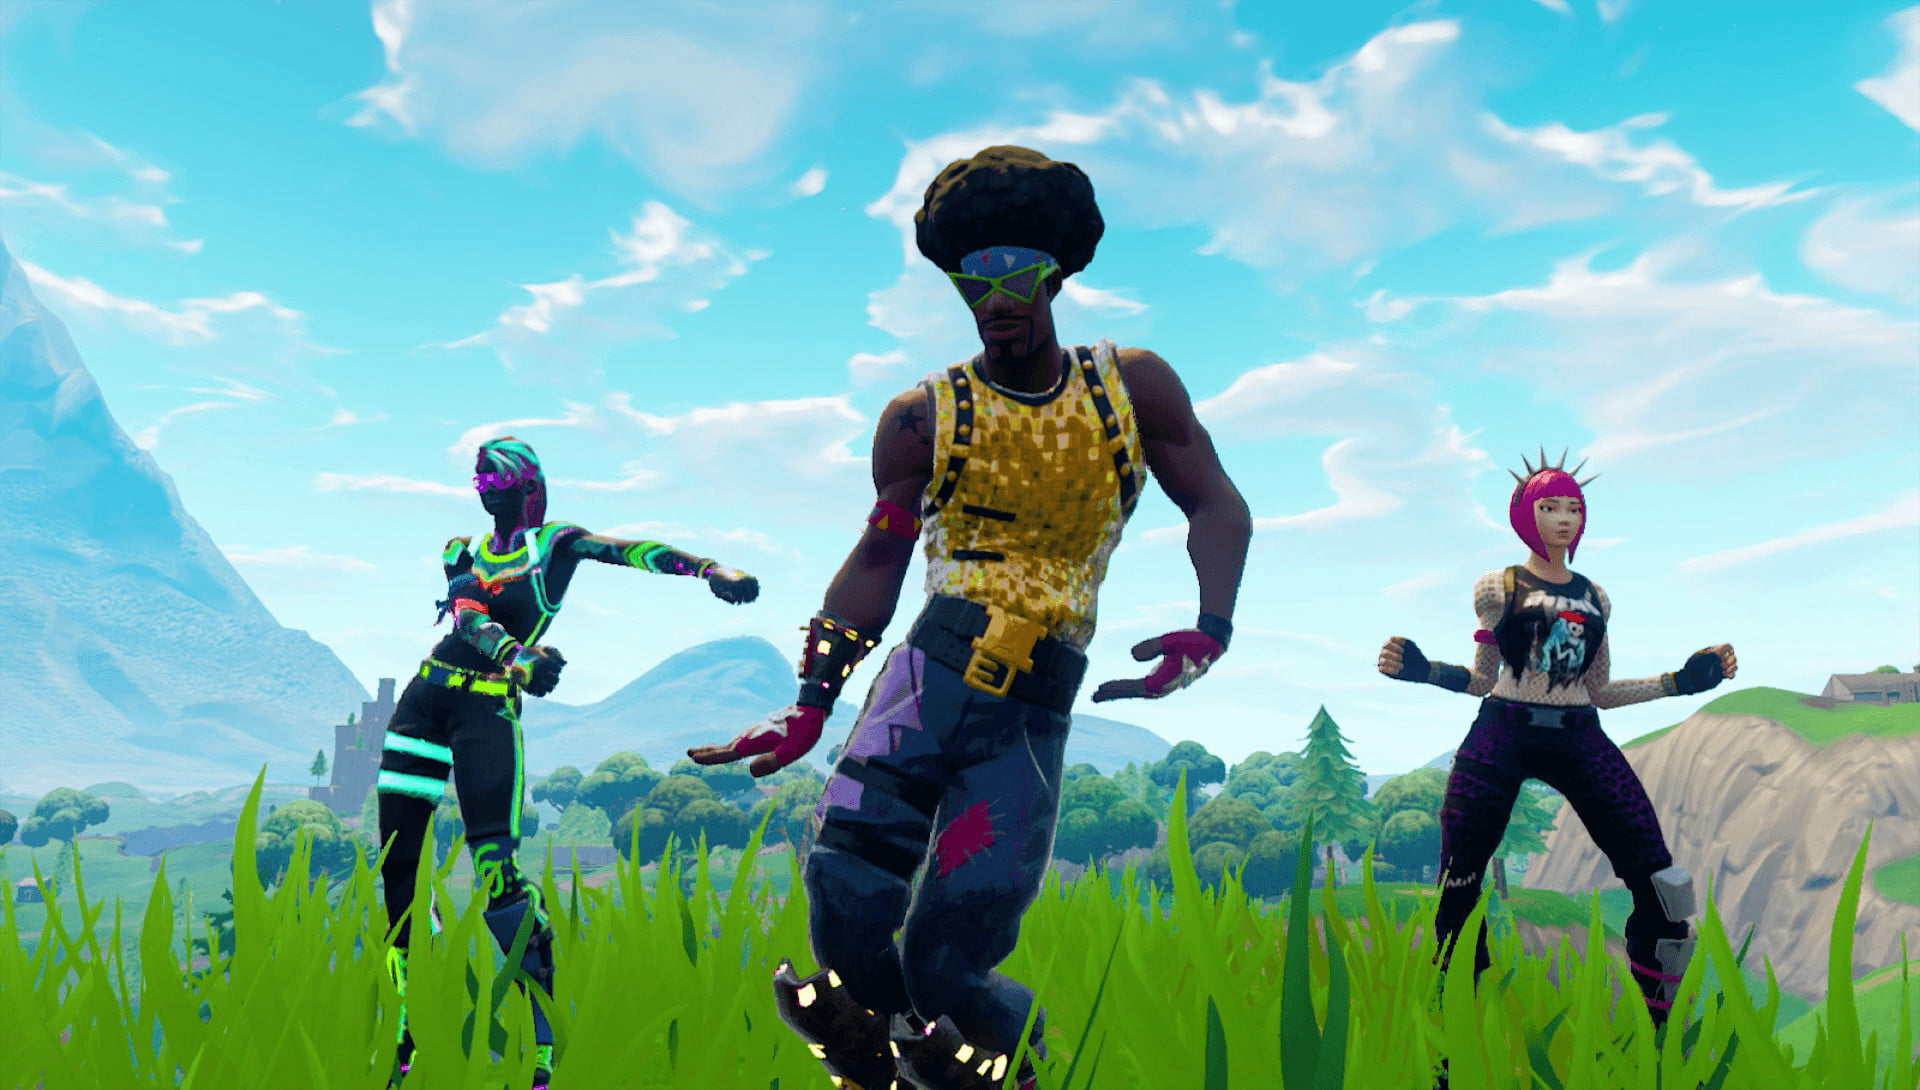 Fortnite For Nintendo Switch Gets 2 Million Players In 24 Hours